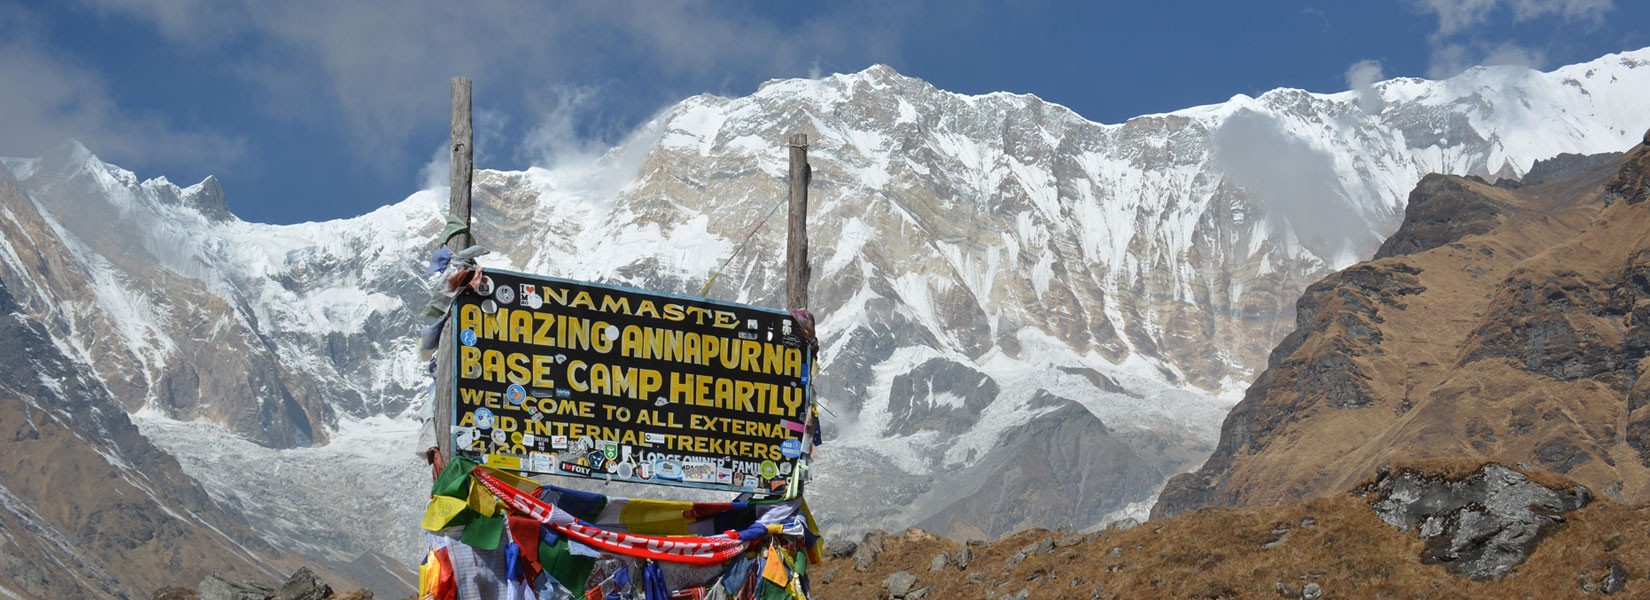 Annapurna Base Camp (via Ghorepani) Trek